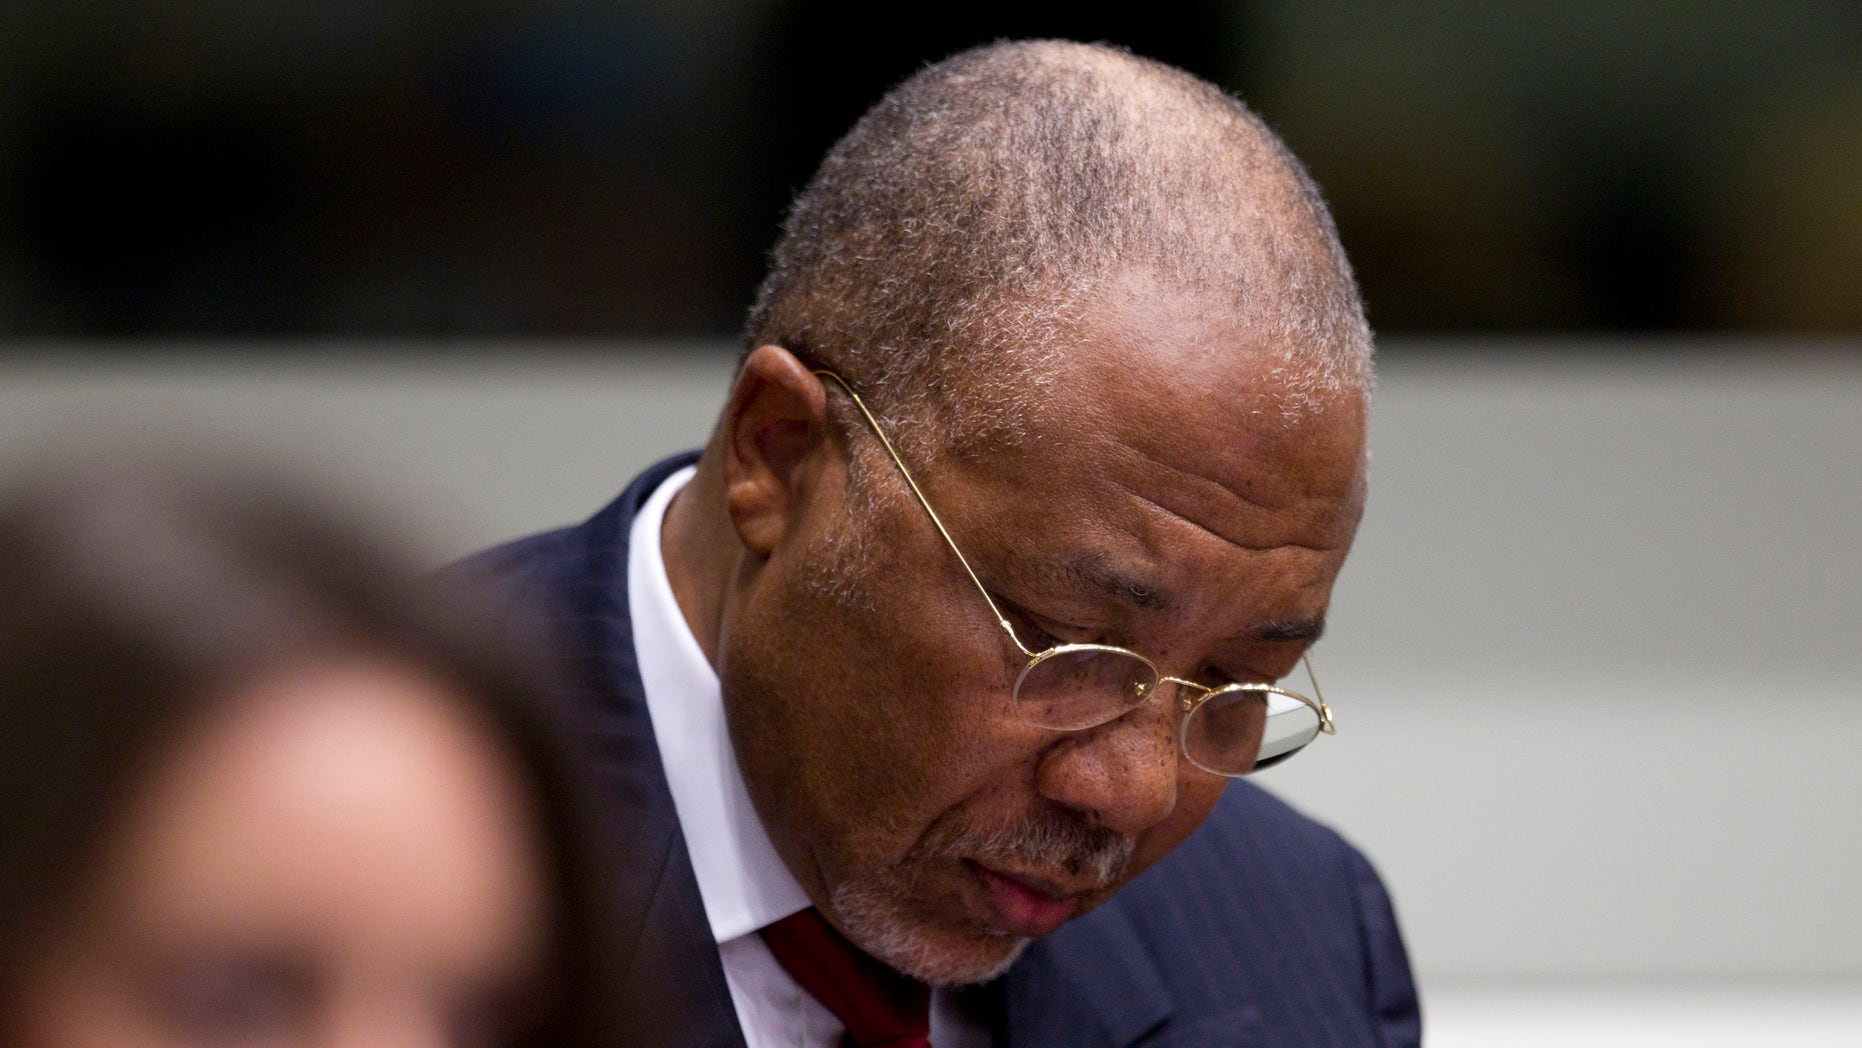 April 26: Former Liberian President Charles Taylor looks down as he waits for the start of a hearing to deliver verdict in the court room of the Special Court for Sierra Leone in Leidschendam, near The Hague, Netherlands.